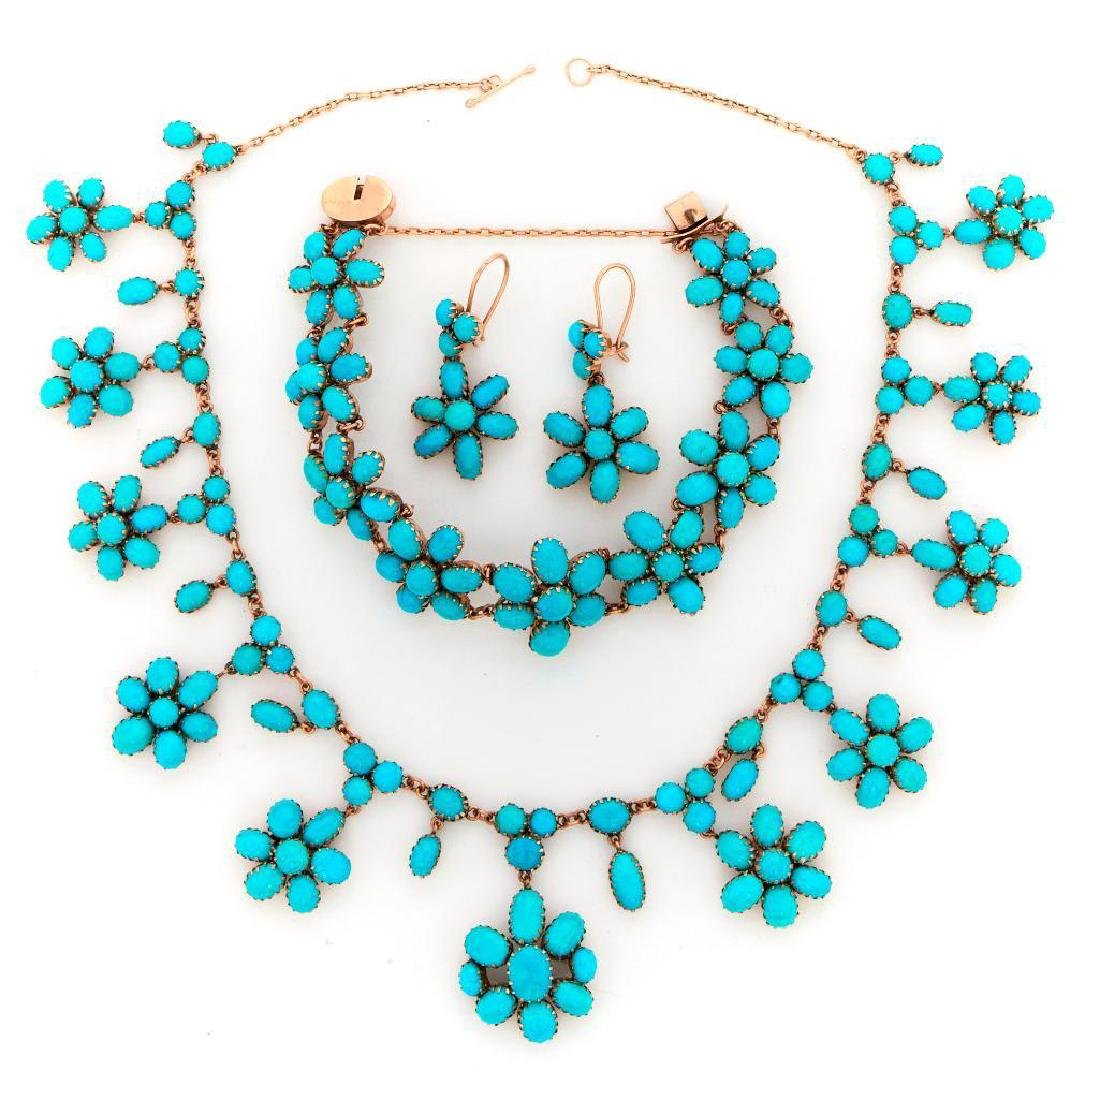 Turquoise and 14k gold jewelry suite